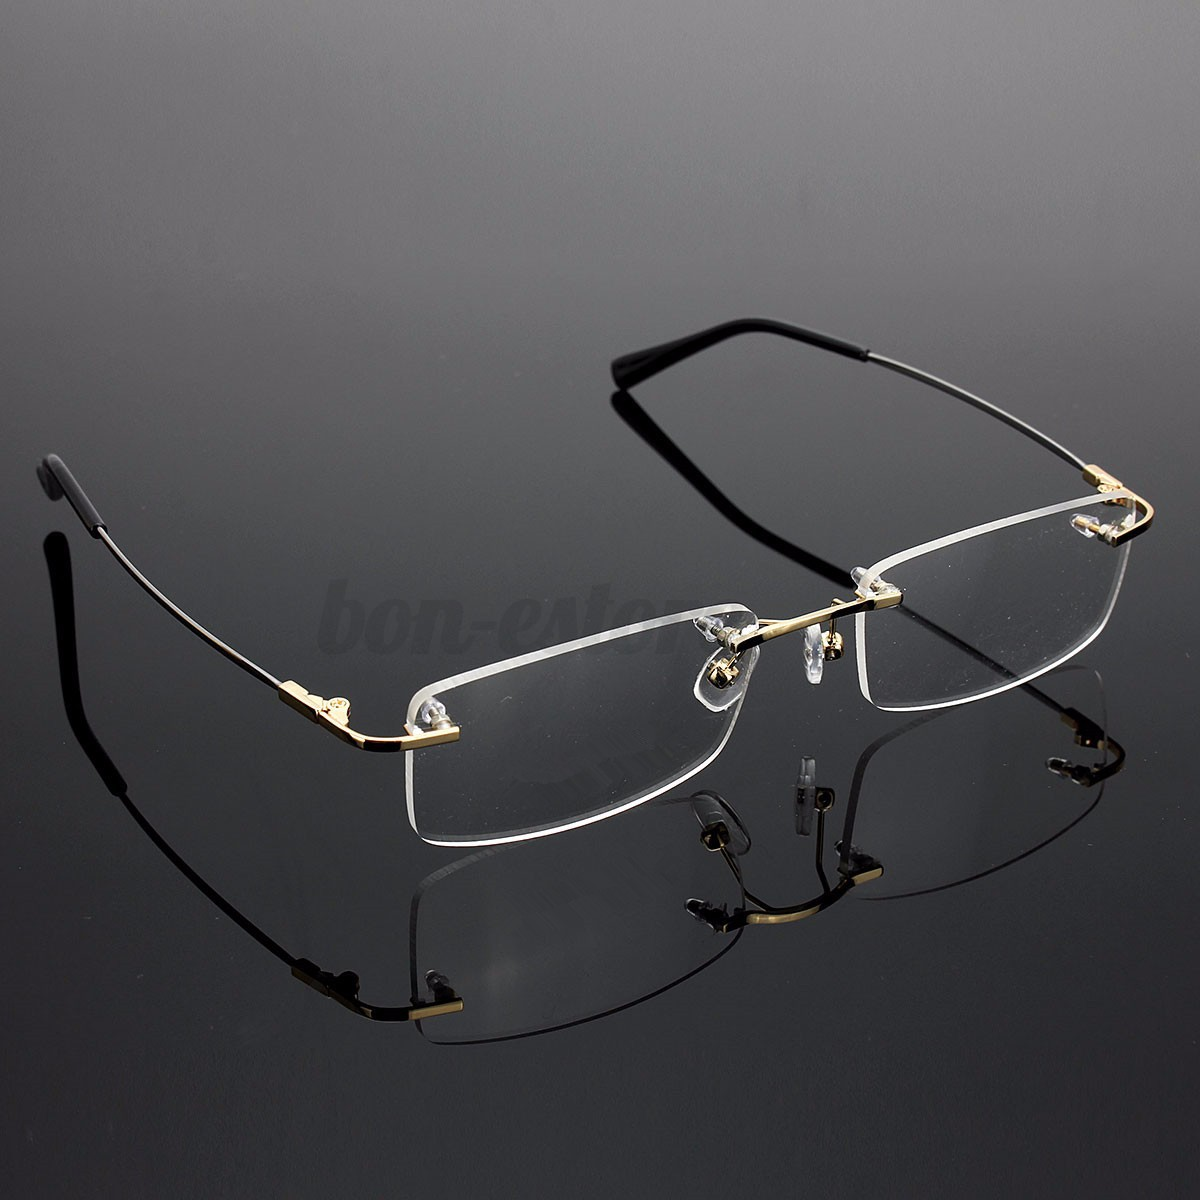 New Rimless Glasses Rx Optical Eyeglasses Memory Titanium ...